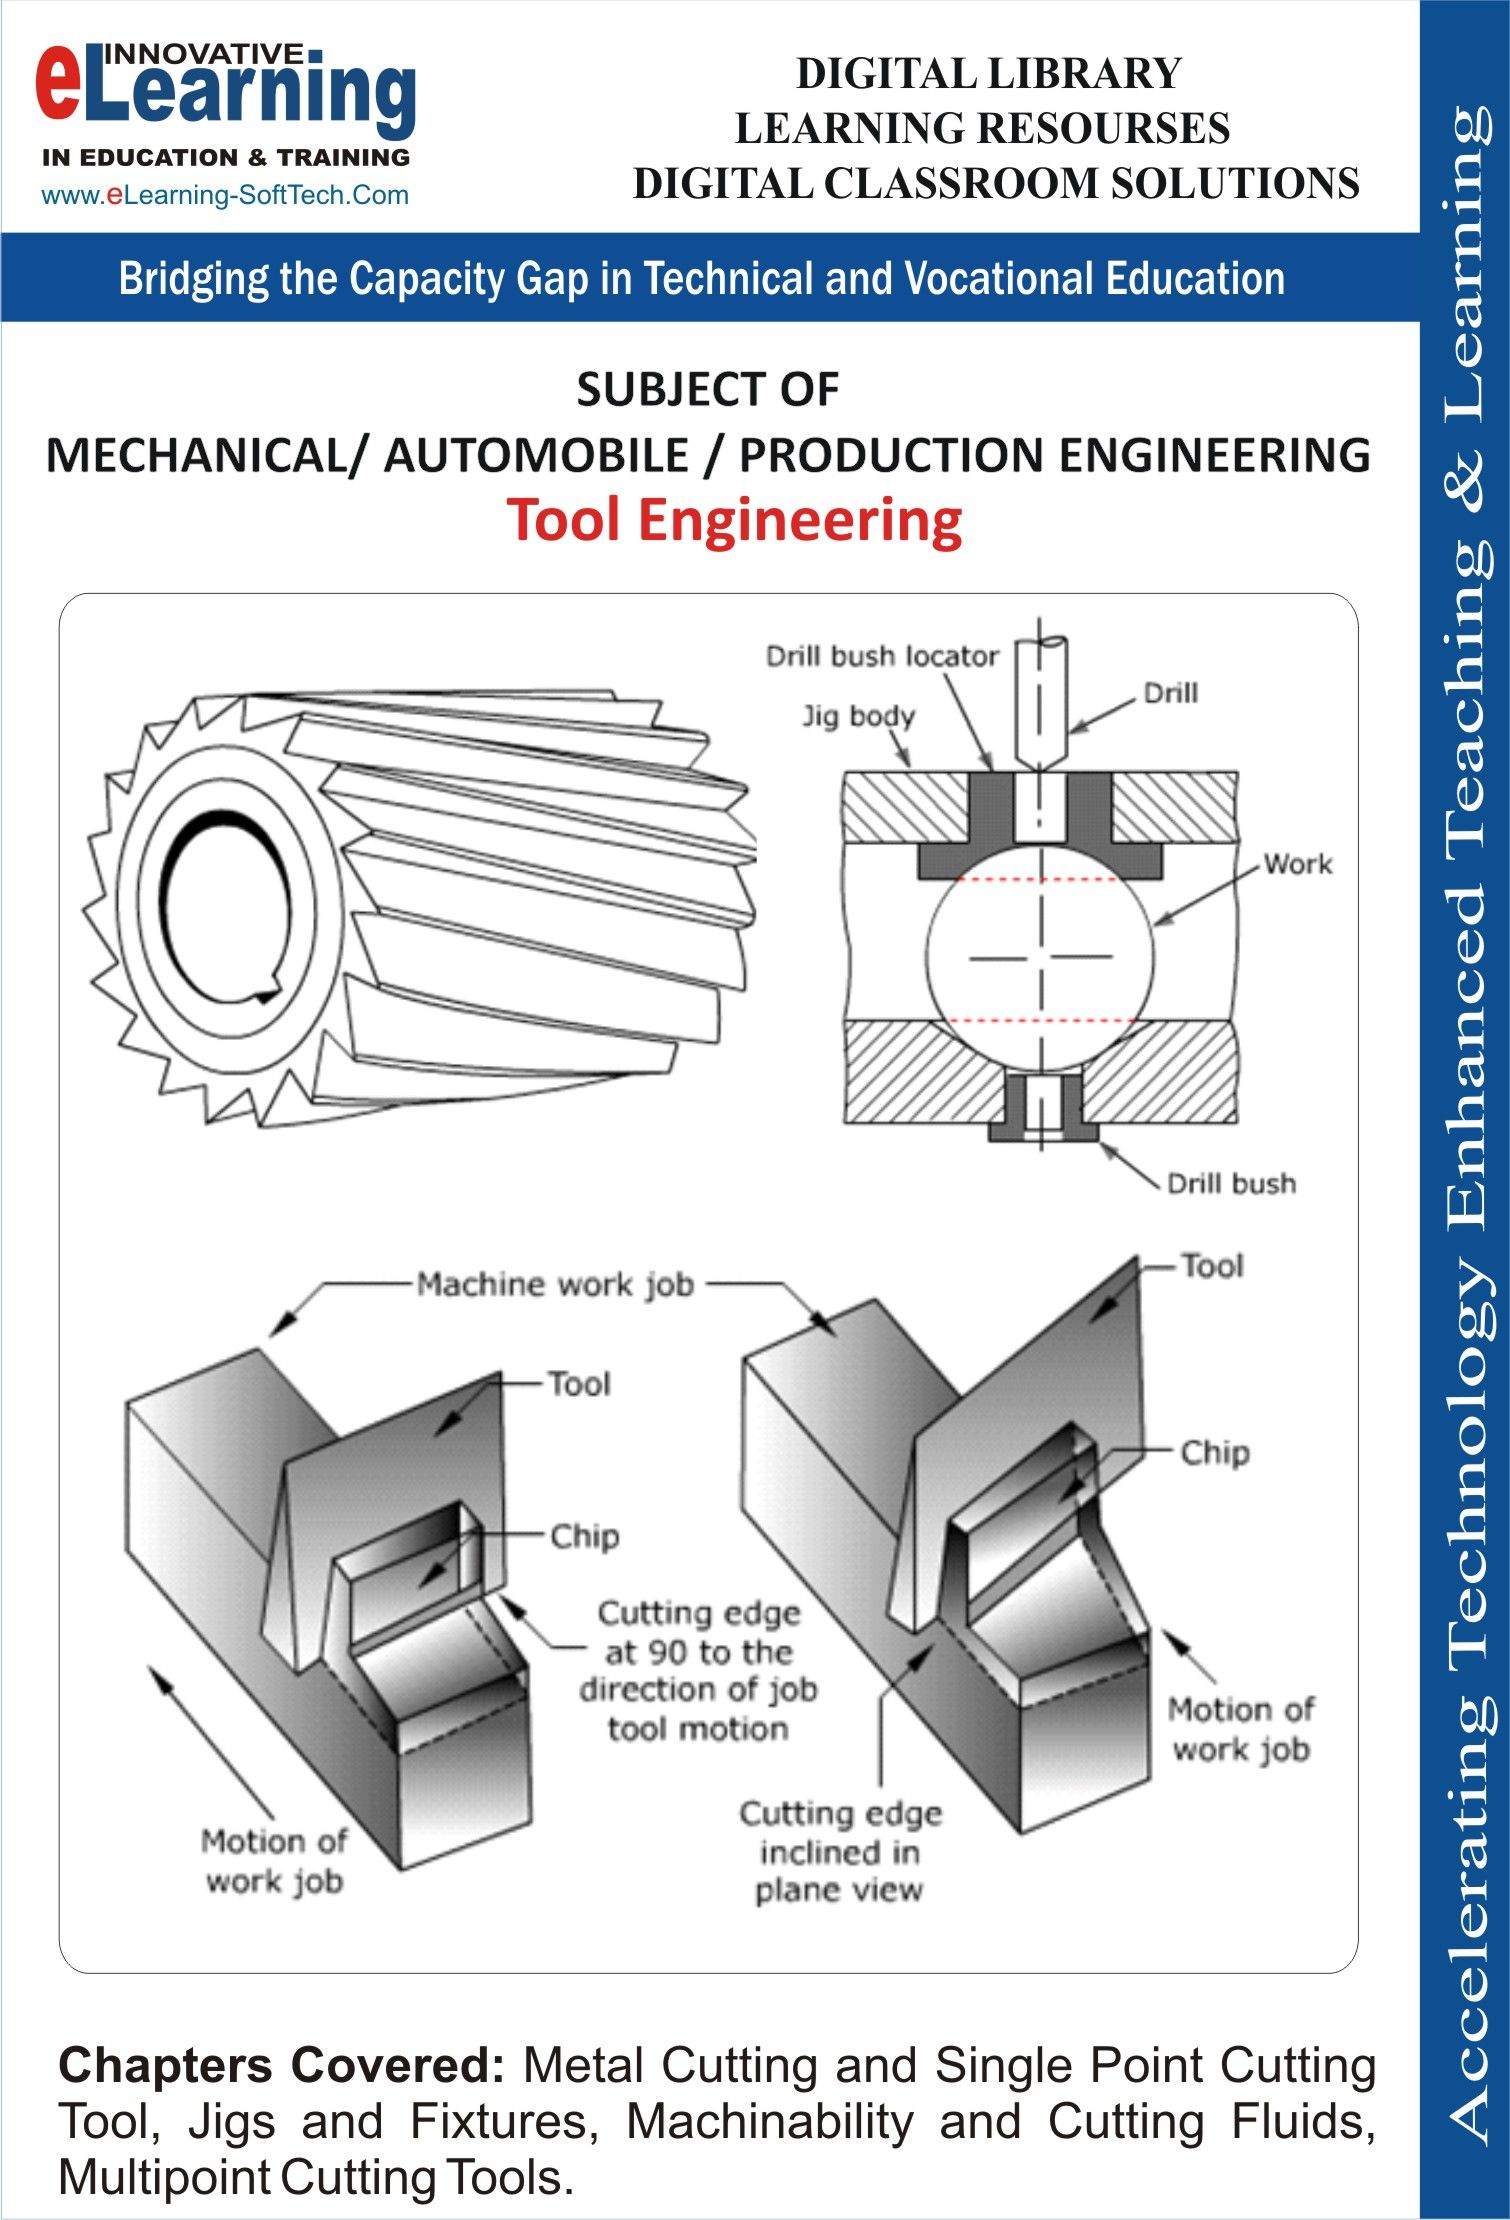 Elearning Software Solution For Tool Engineering